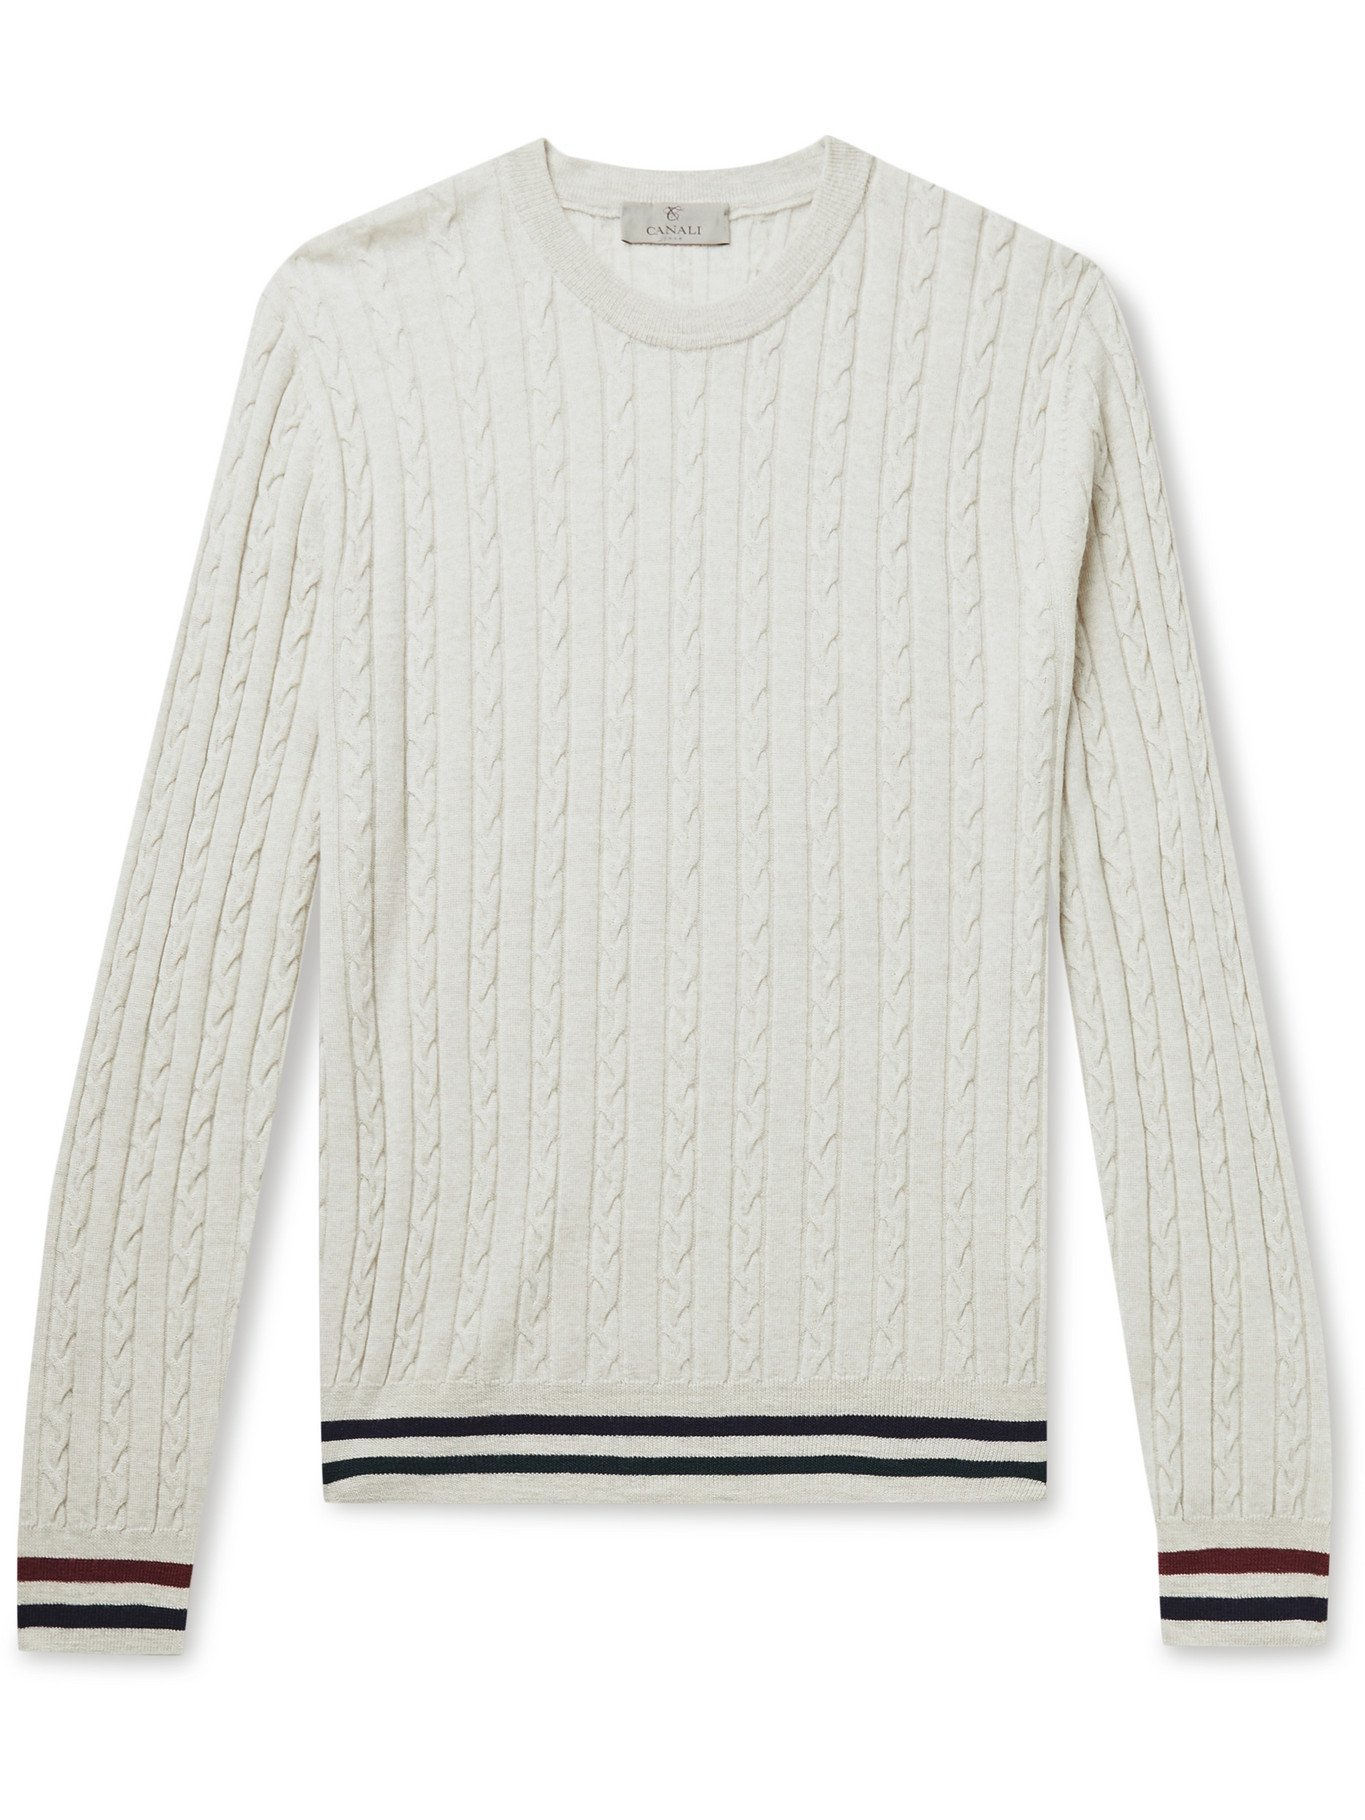 Photo: CANALI - Striped Cable-Knit Wool Sweater - Gray - IT 52